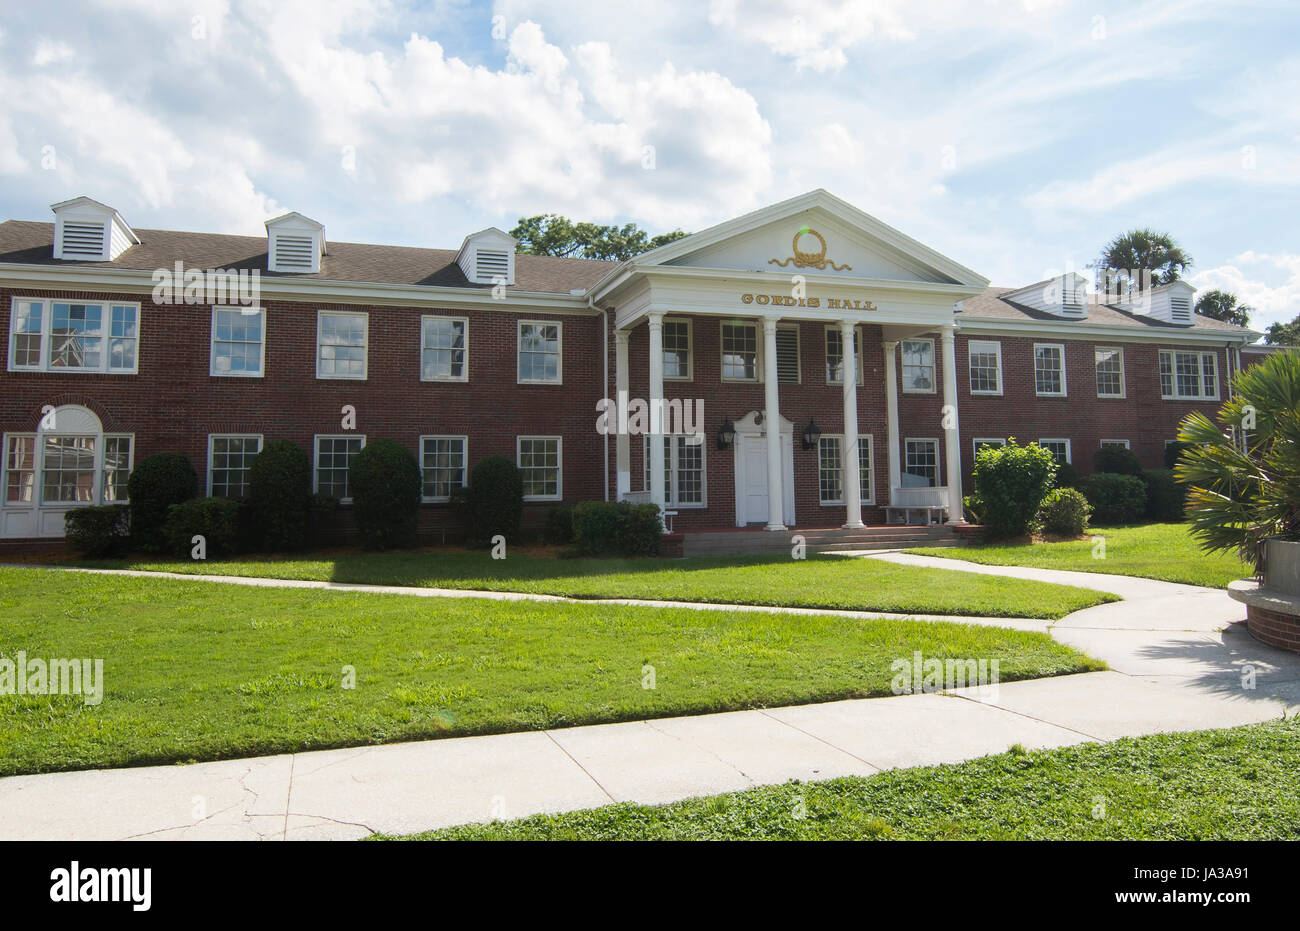 Deland Florida Stetson University college Gordis Hall dorms dans petite ville , Banque D'Images